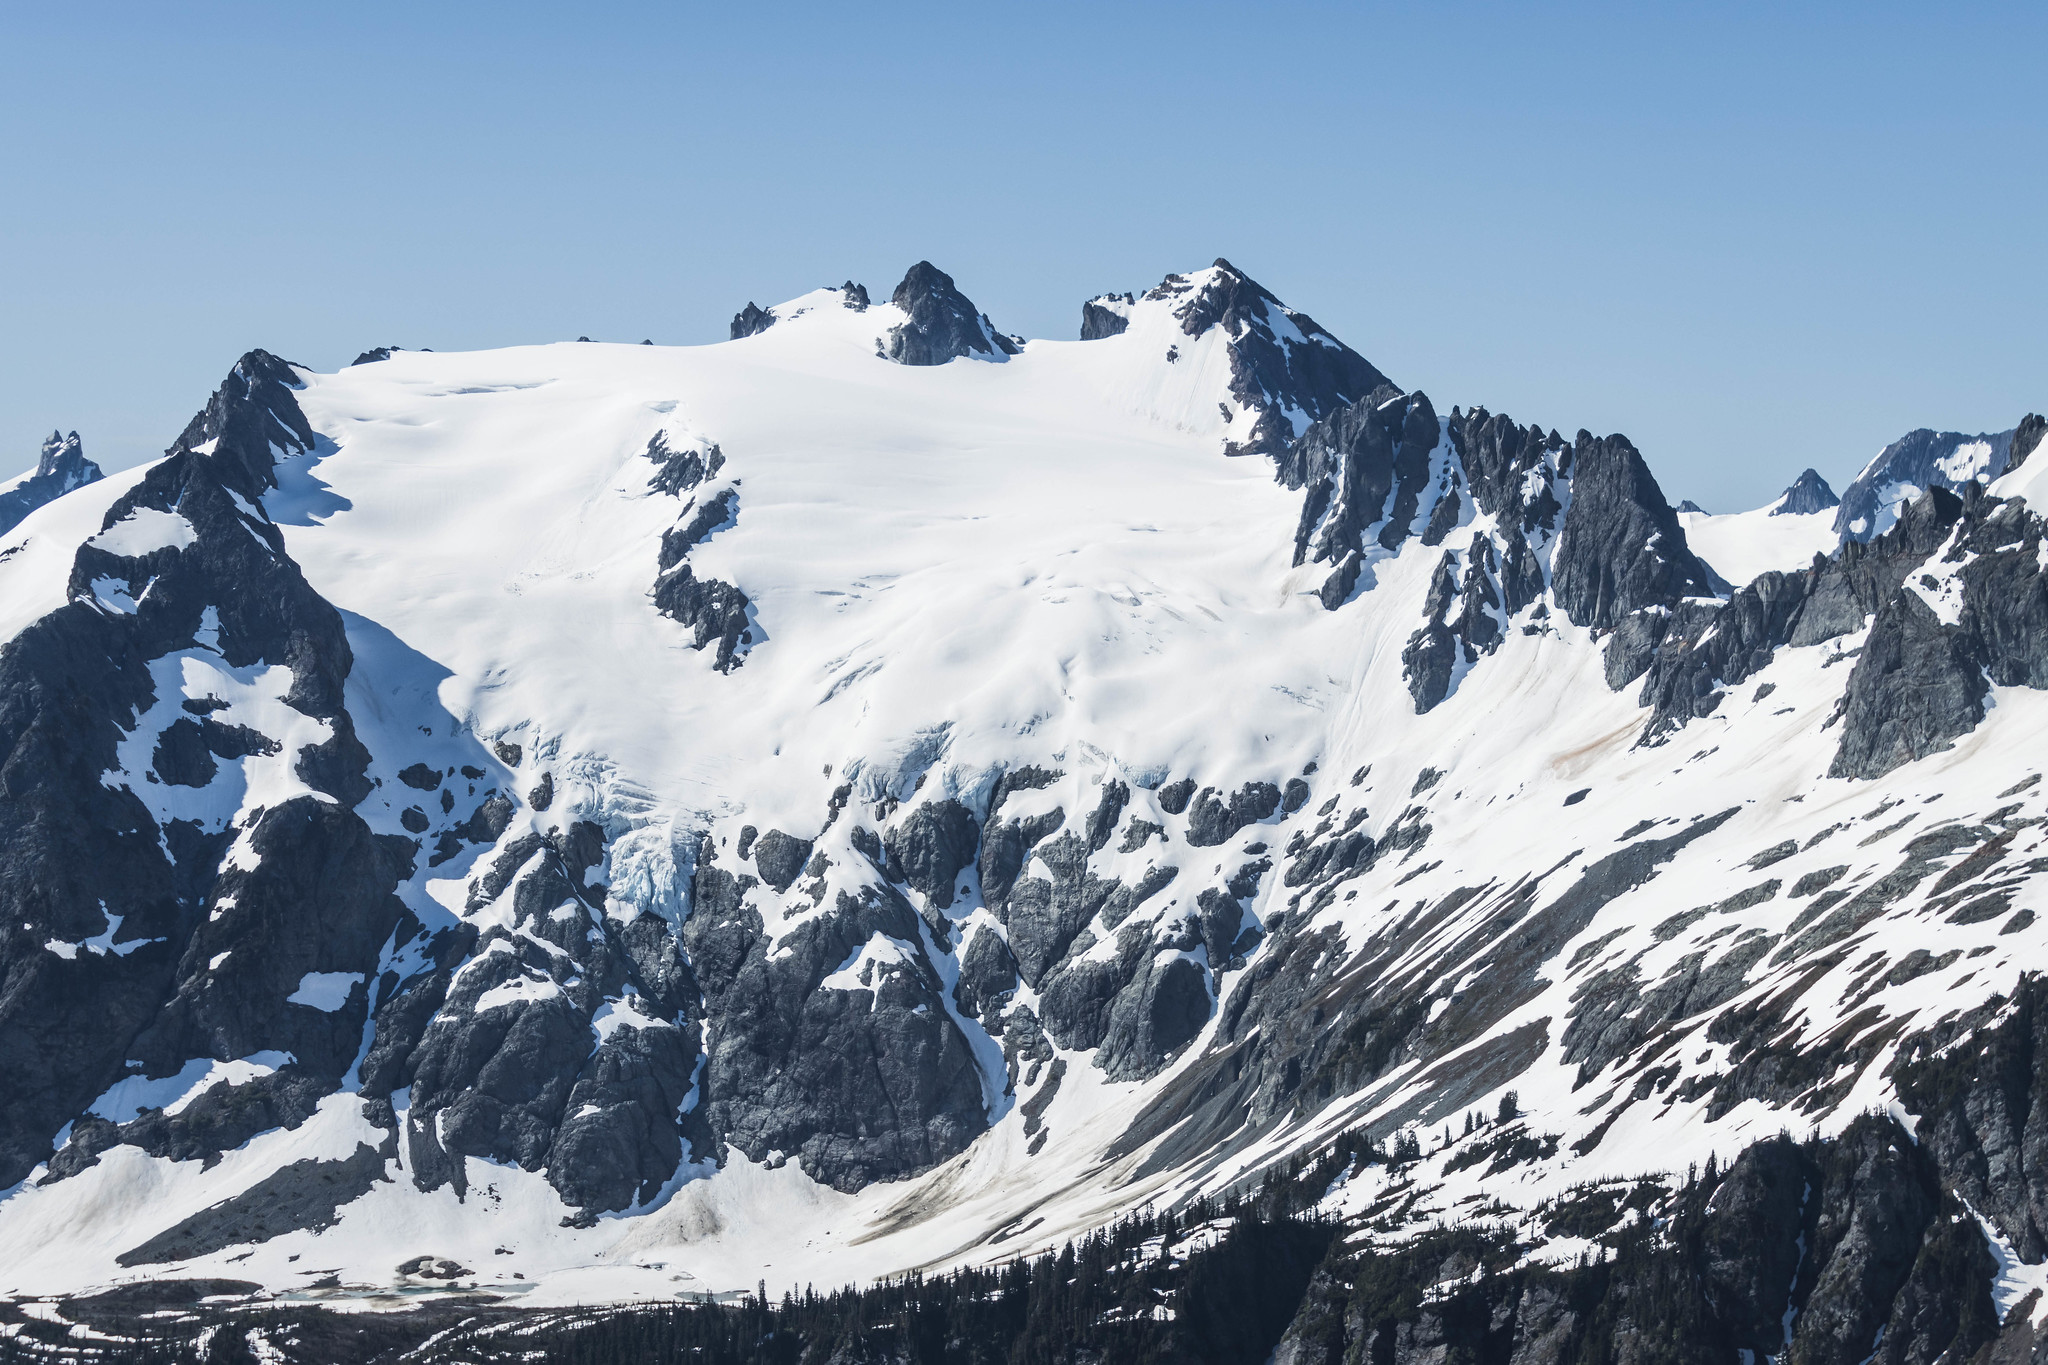 One final view of Sentinel Peak and Old Guard Peak